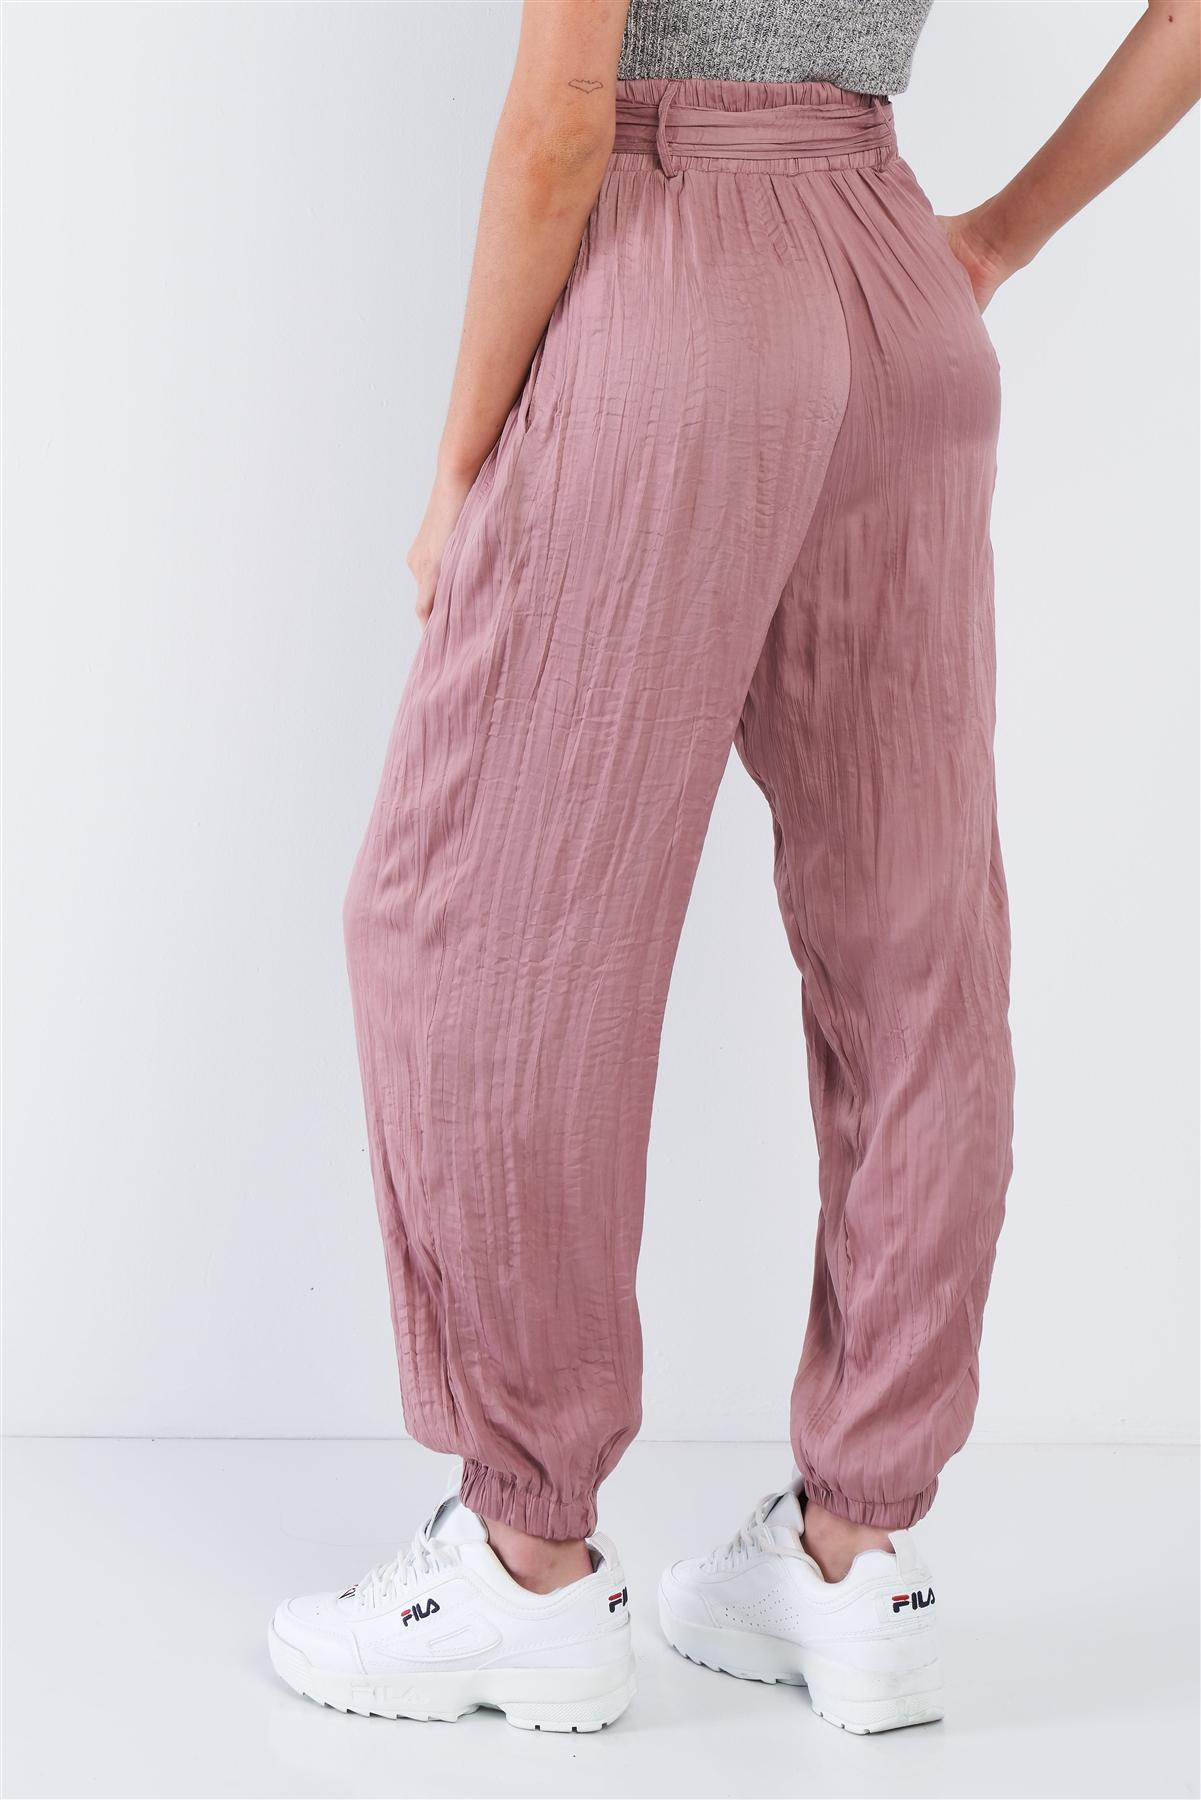 Gypsy Crushed Satin Pants in Blush